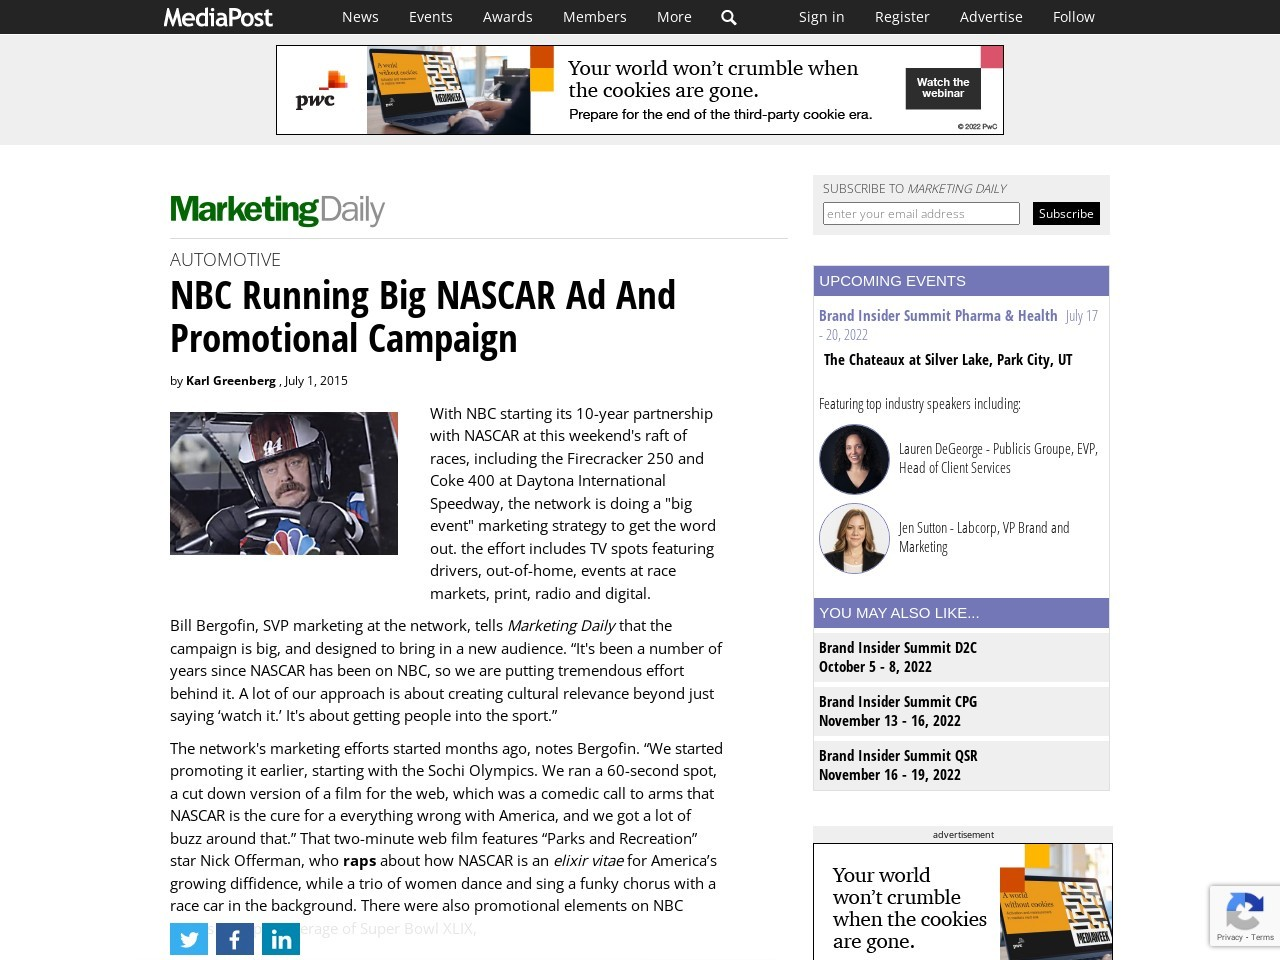 NBC Running Big NASCAR Ad And Promotional Campaign